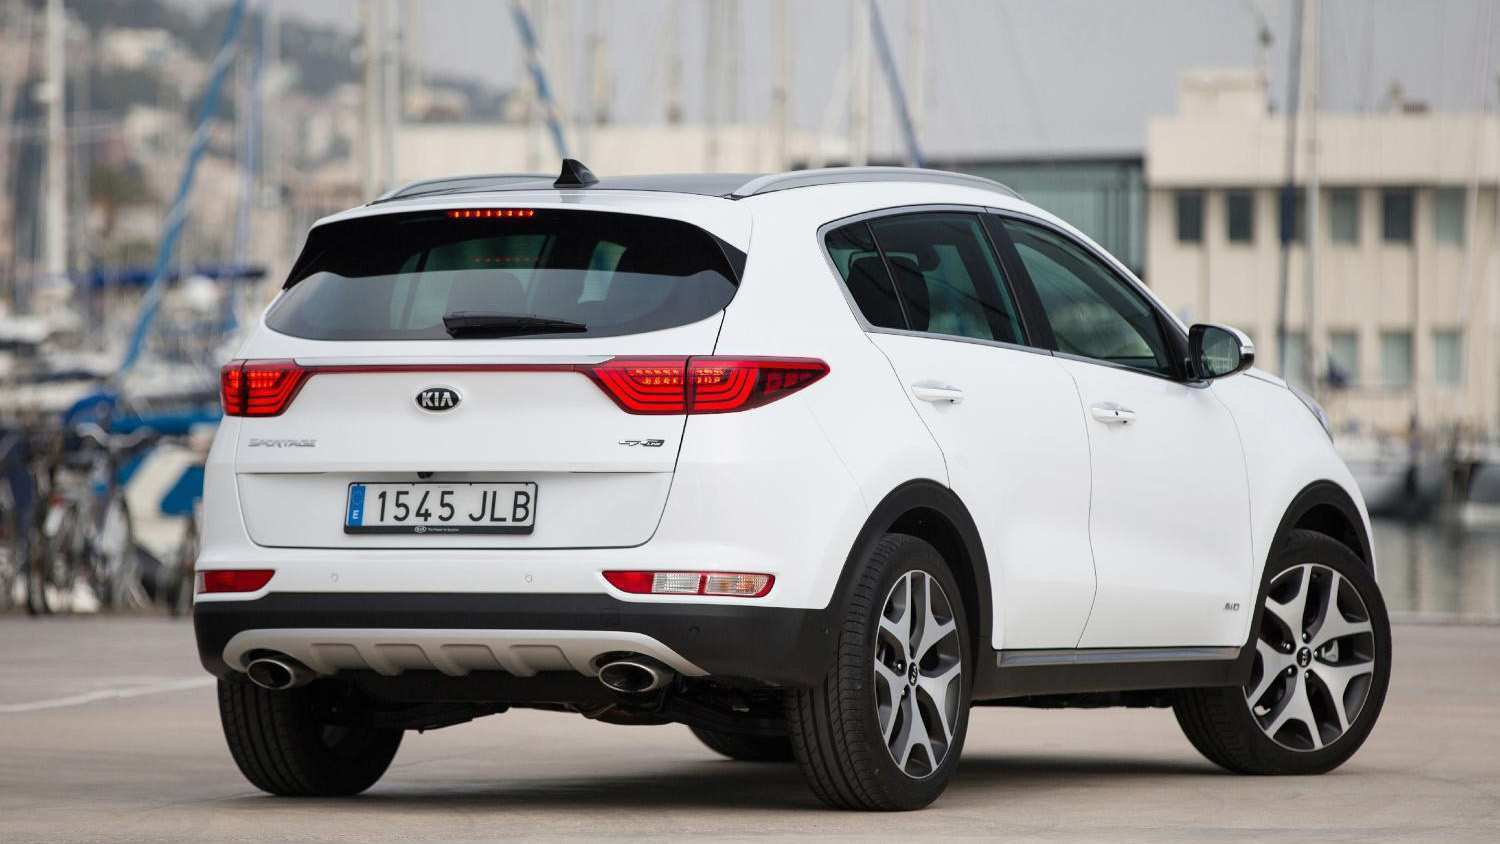 36 Gallery of Best 2019 Kia Sportage Sx Turbo Review Performance And New Engine Prices for Best 2019 Kia Sportage Sx Turbo Review Performance And New Engine